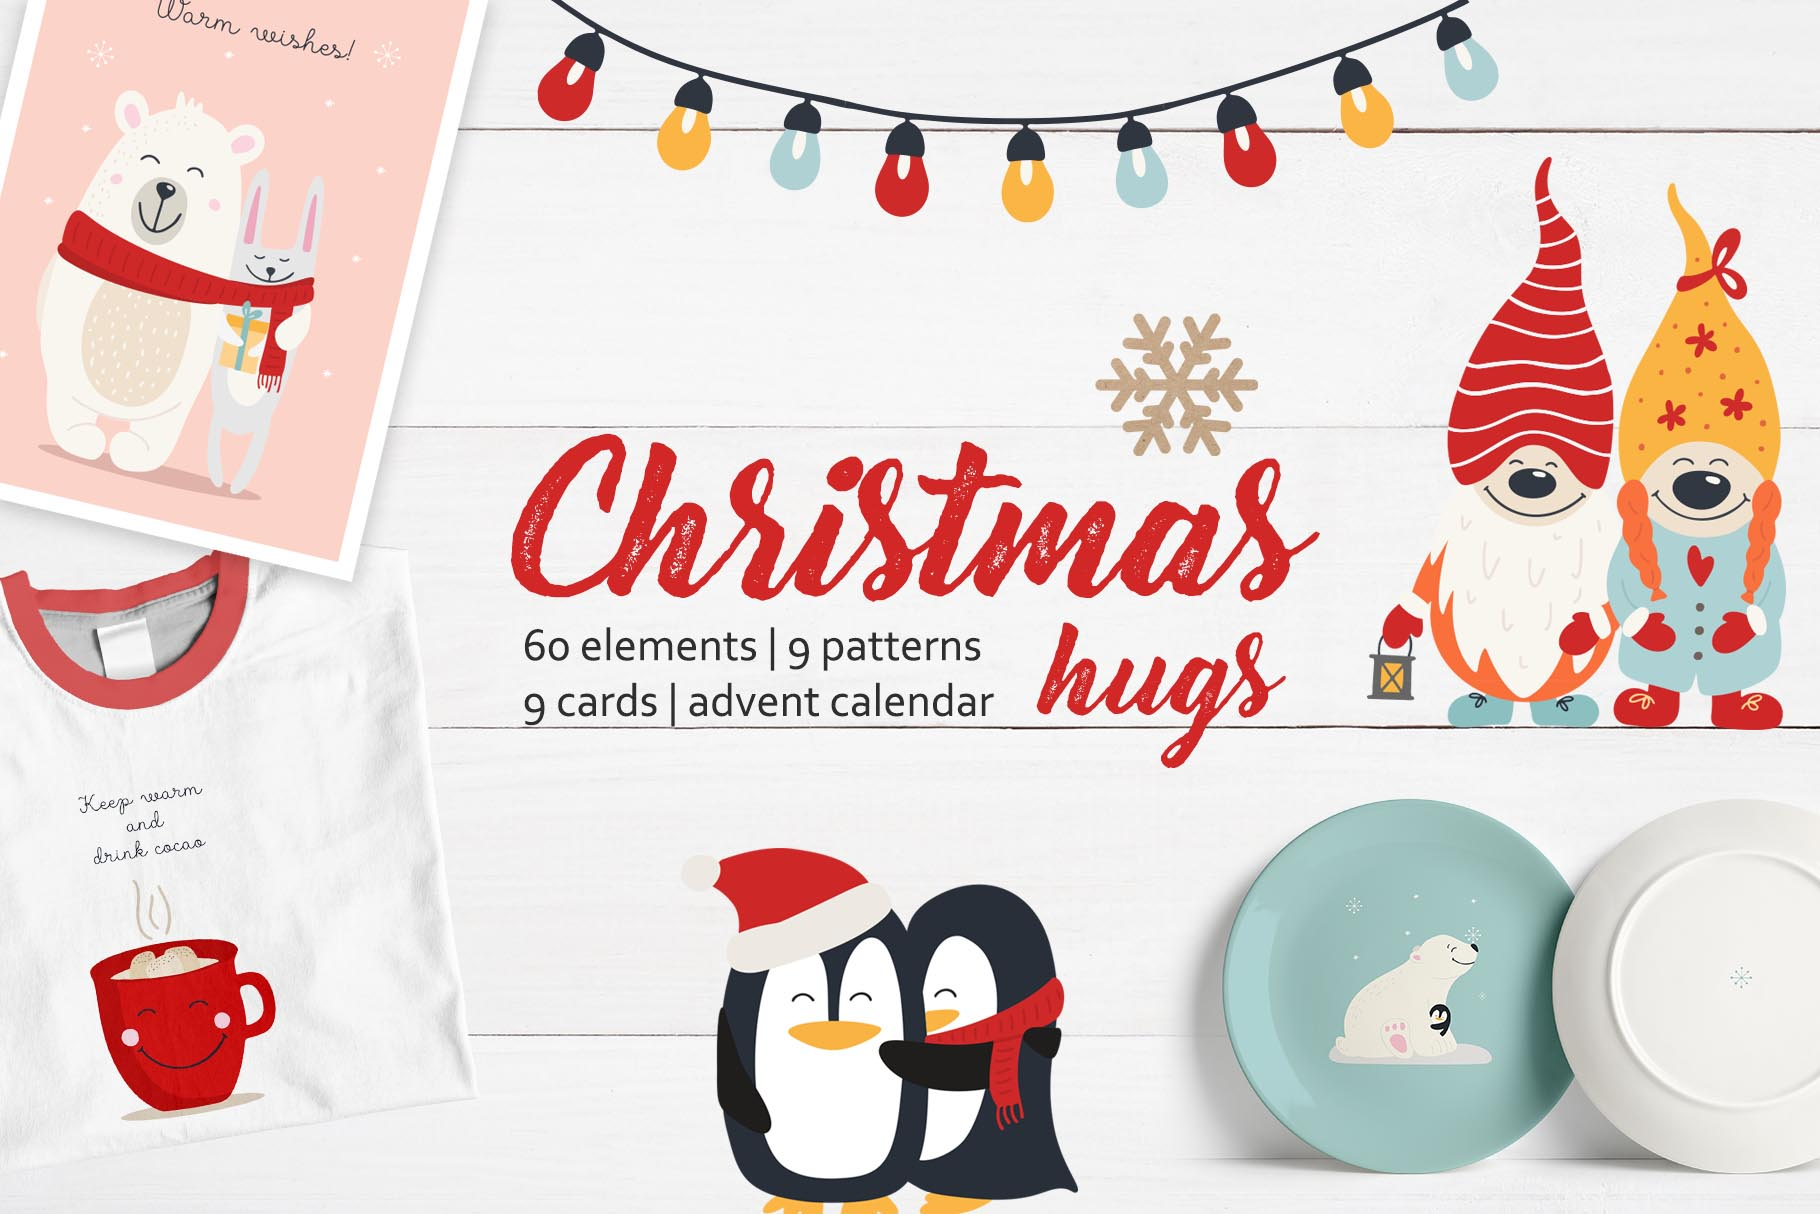 Download Free Christmas Hugs Collection Graphic By Alisovna Creative Fabrica for Cricut Explore, Silhouette and other cutting machines.